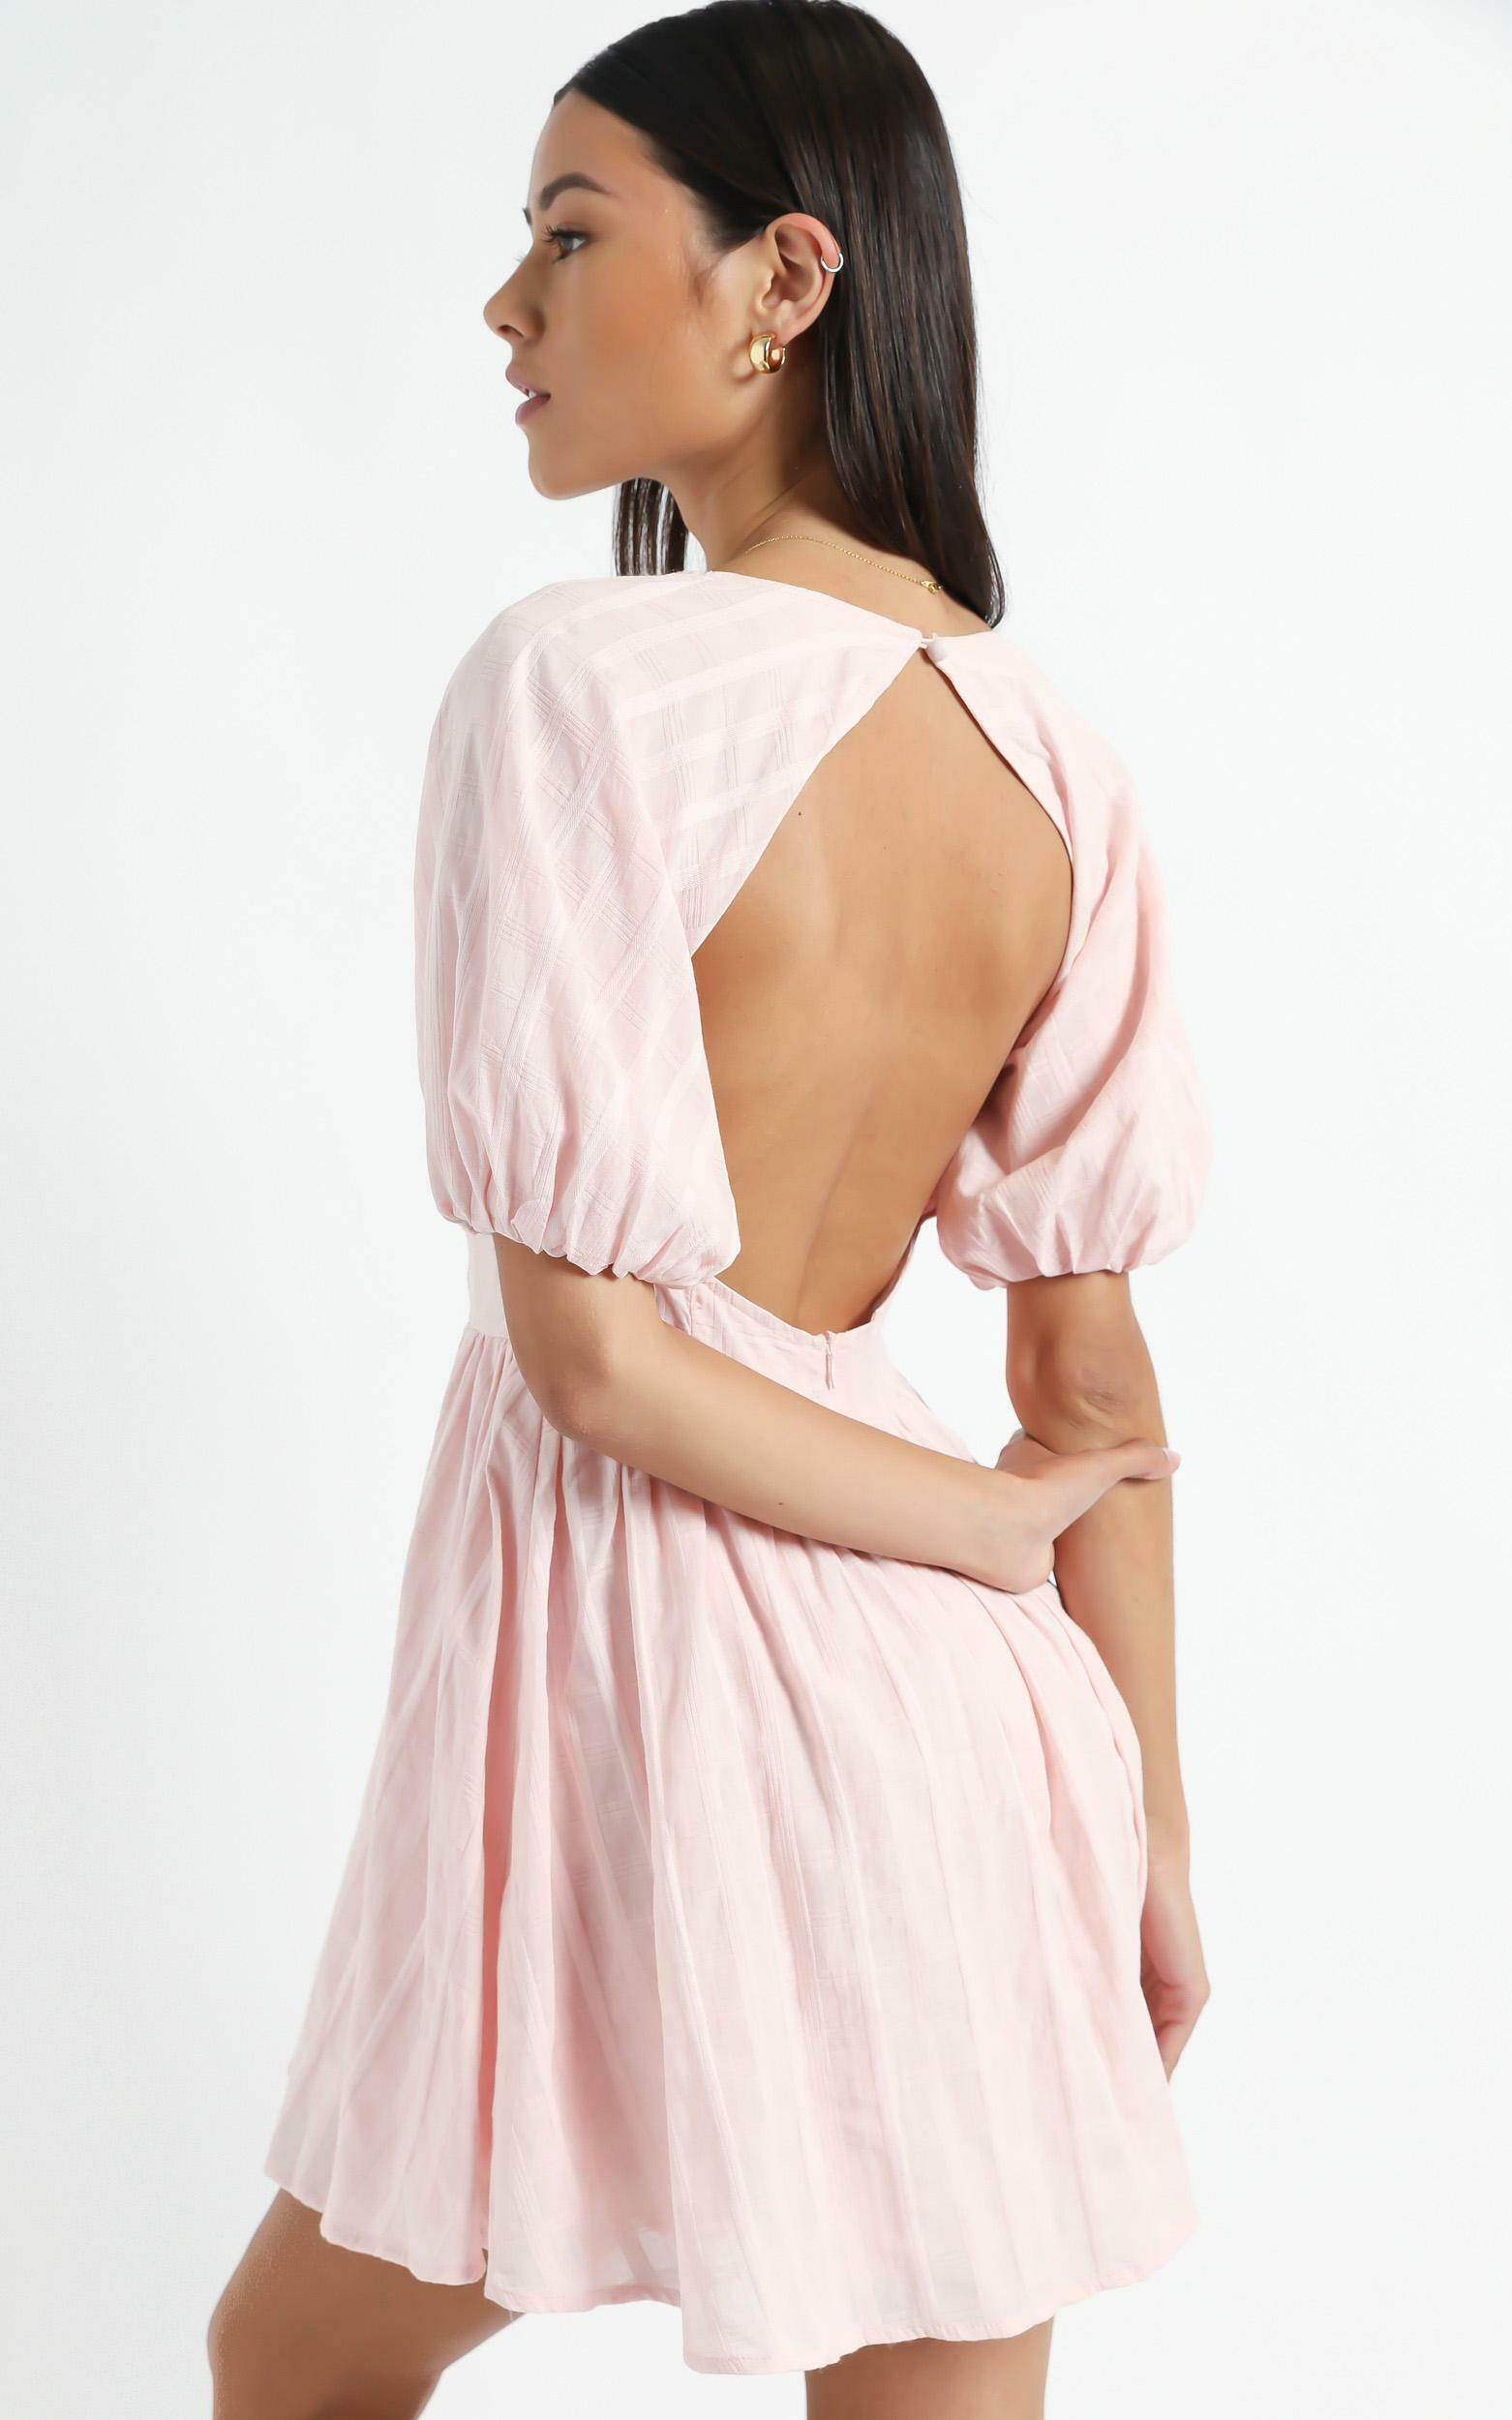 Cherie Dress in Blush - 6 (XS), Blush, hi-res image number null